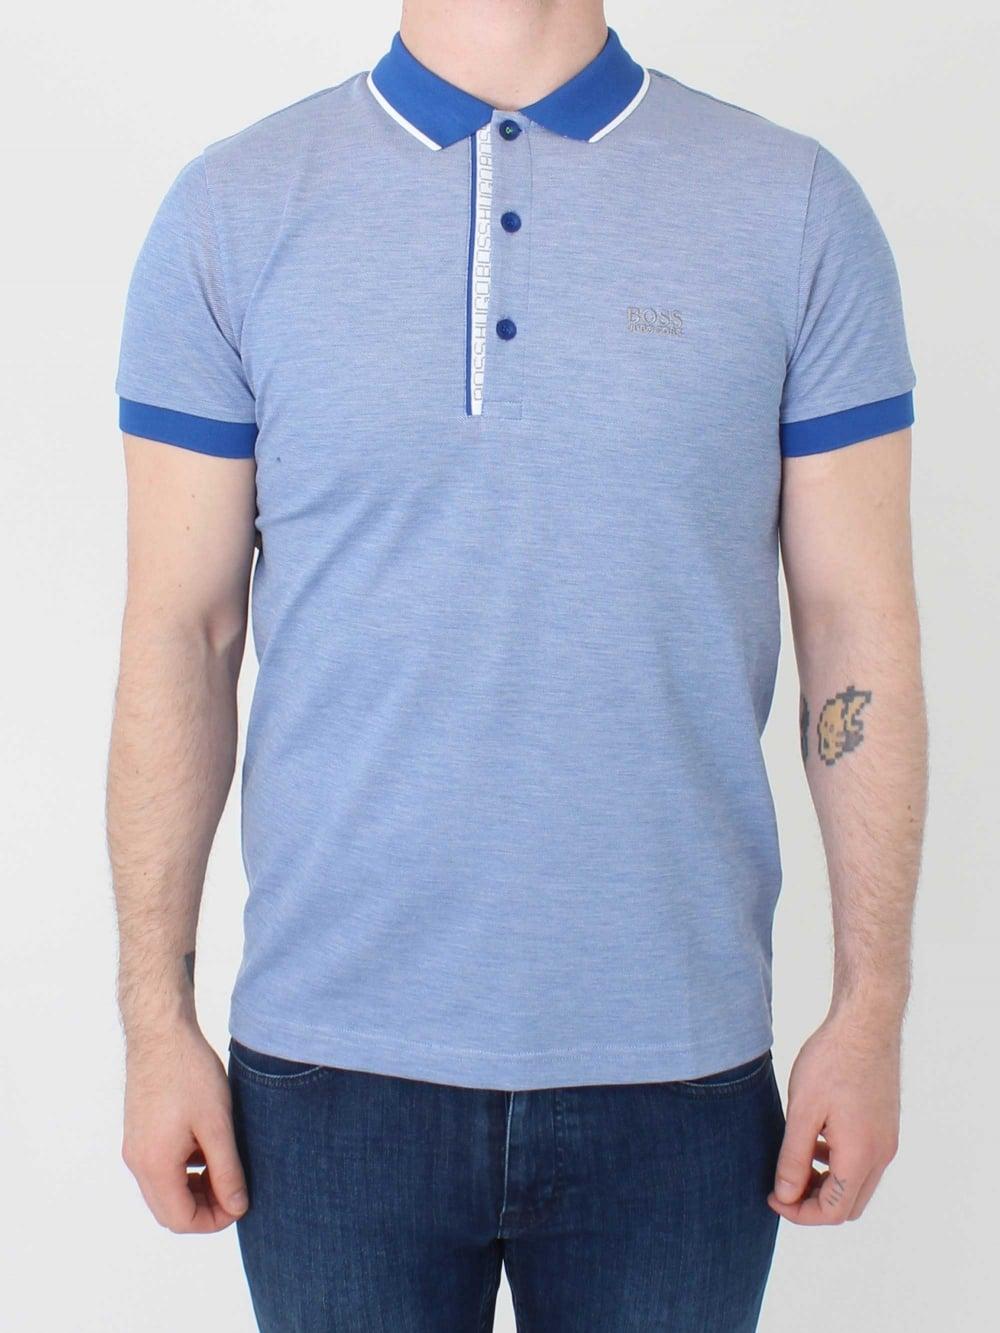 Clothes, Shoes & Accessories Shirts & Tops Provided Hugo Boss Polo Medium